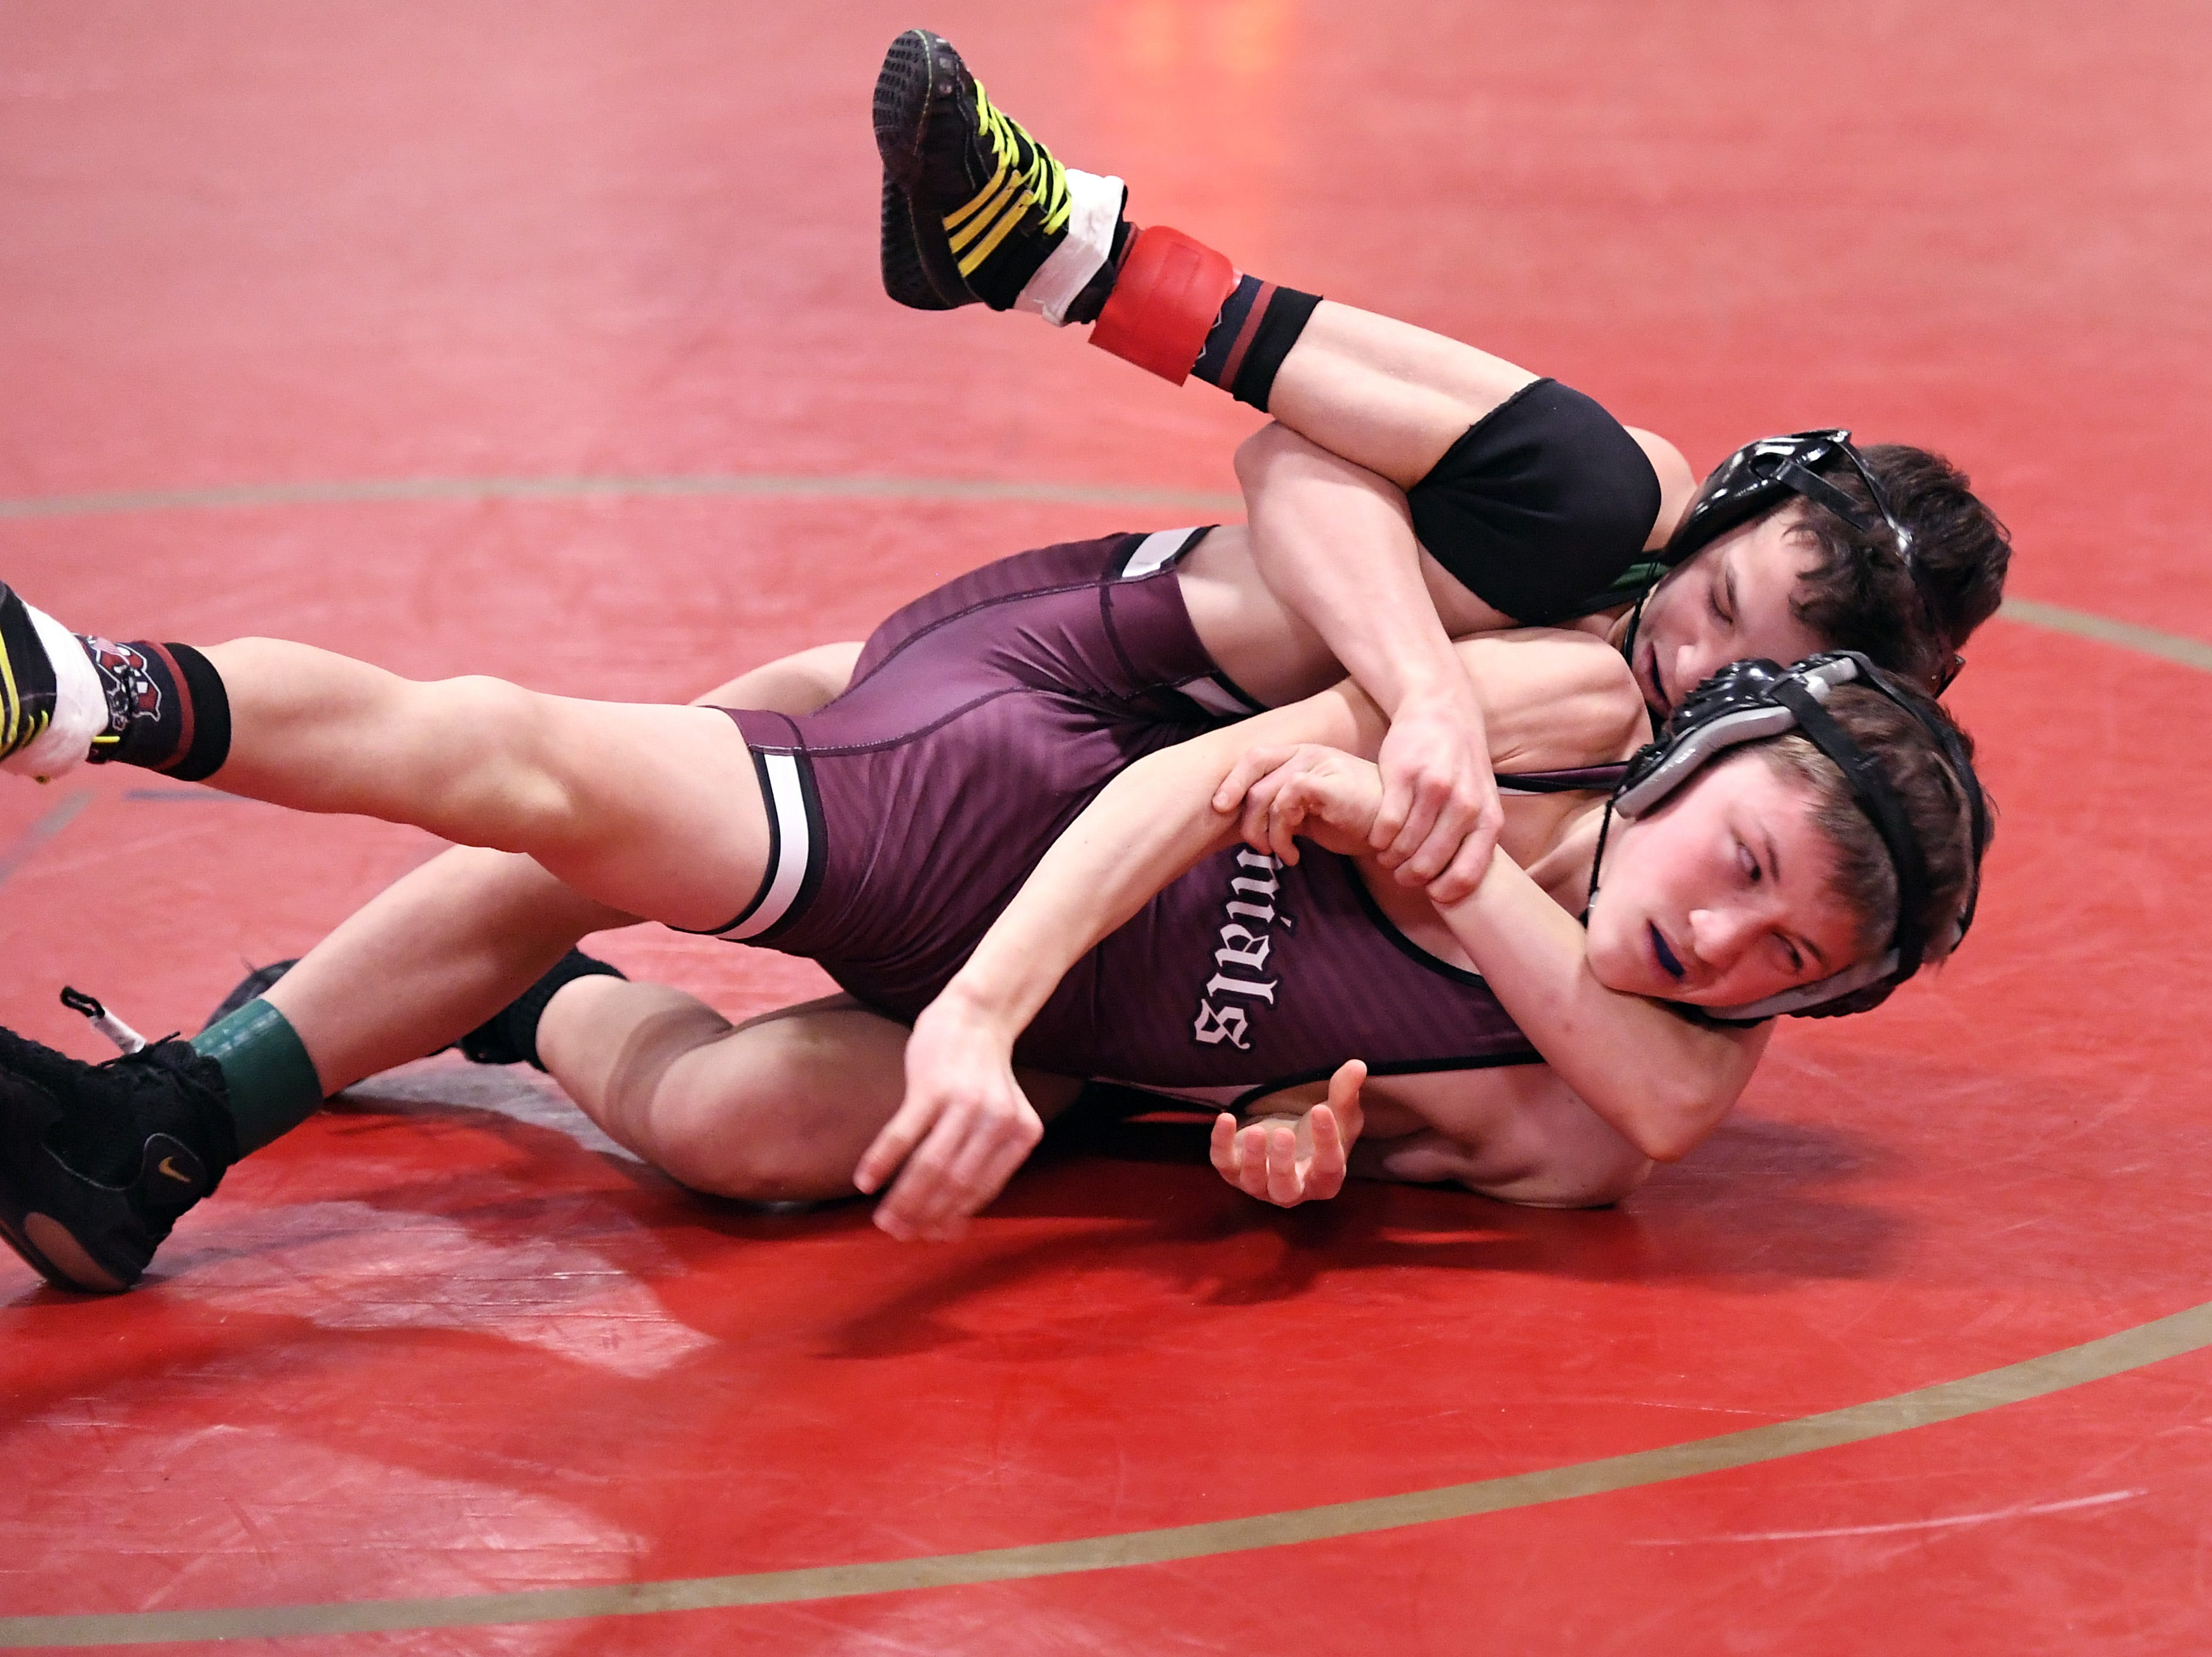 Morris County Tournament wrestling opening round at  Mount Olive High School on Friday, January 25, 2019. Aaron Kurzer of Montville on his way to defeating Mason Gervasio of Morristown in their 106 pound match.